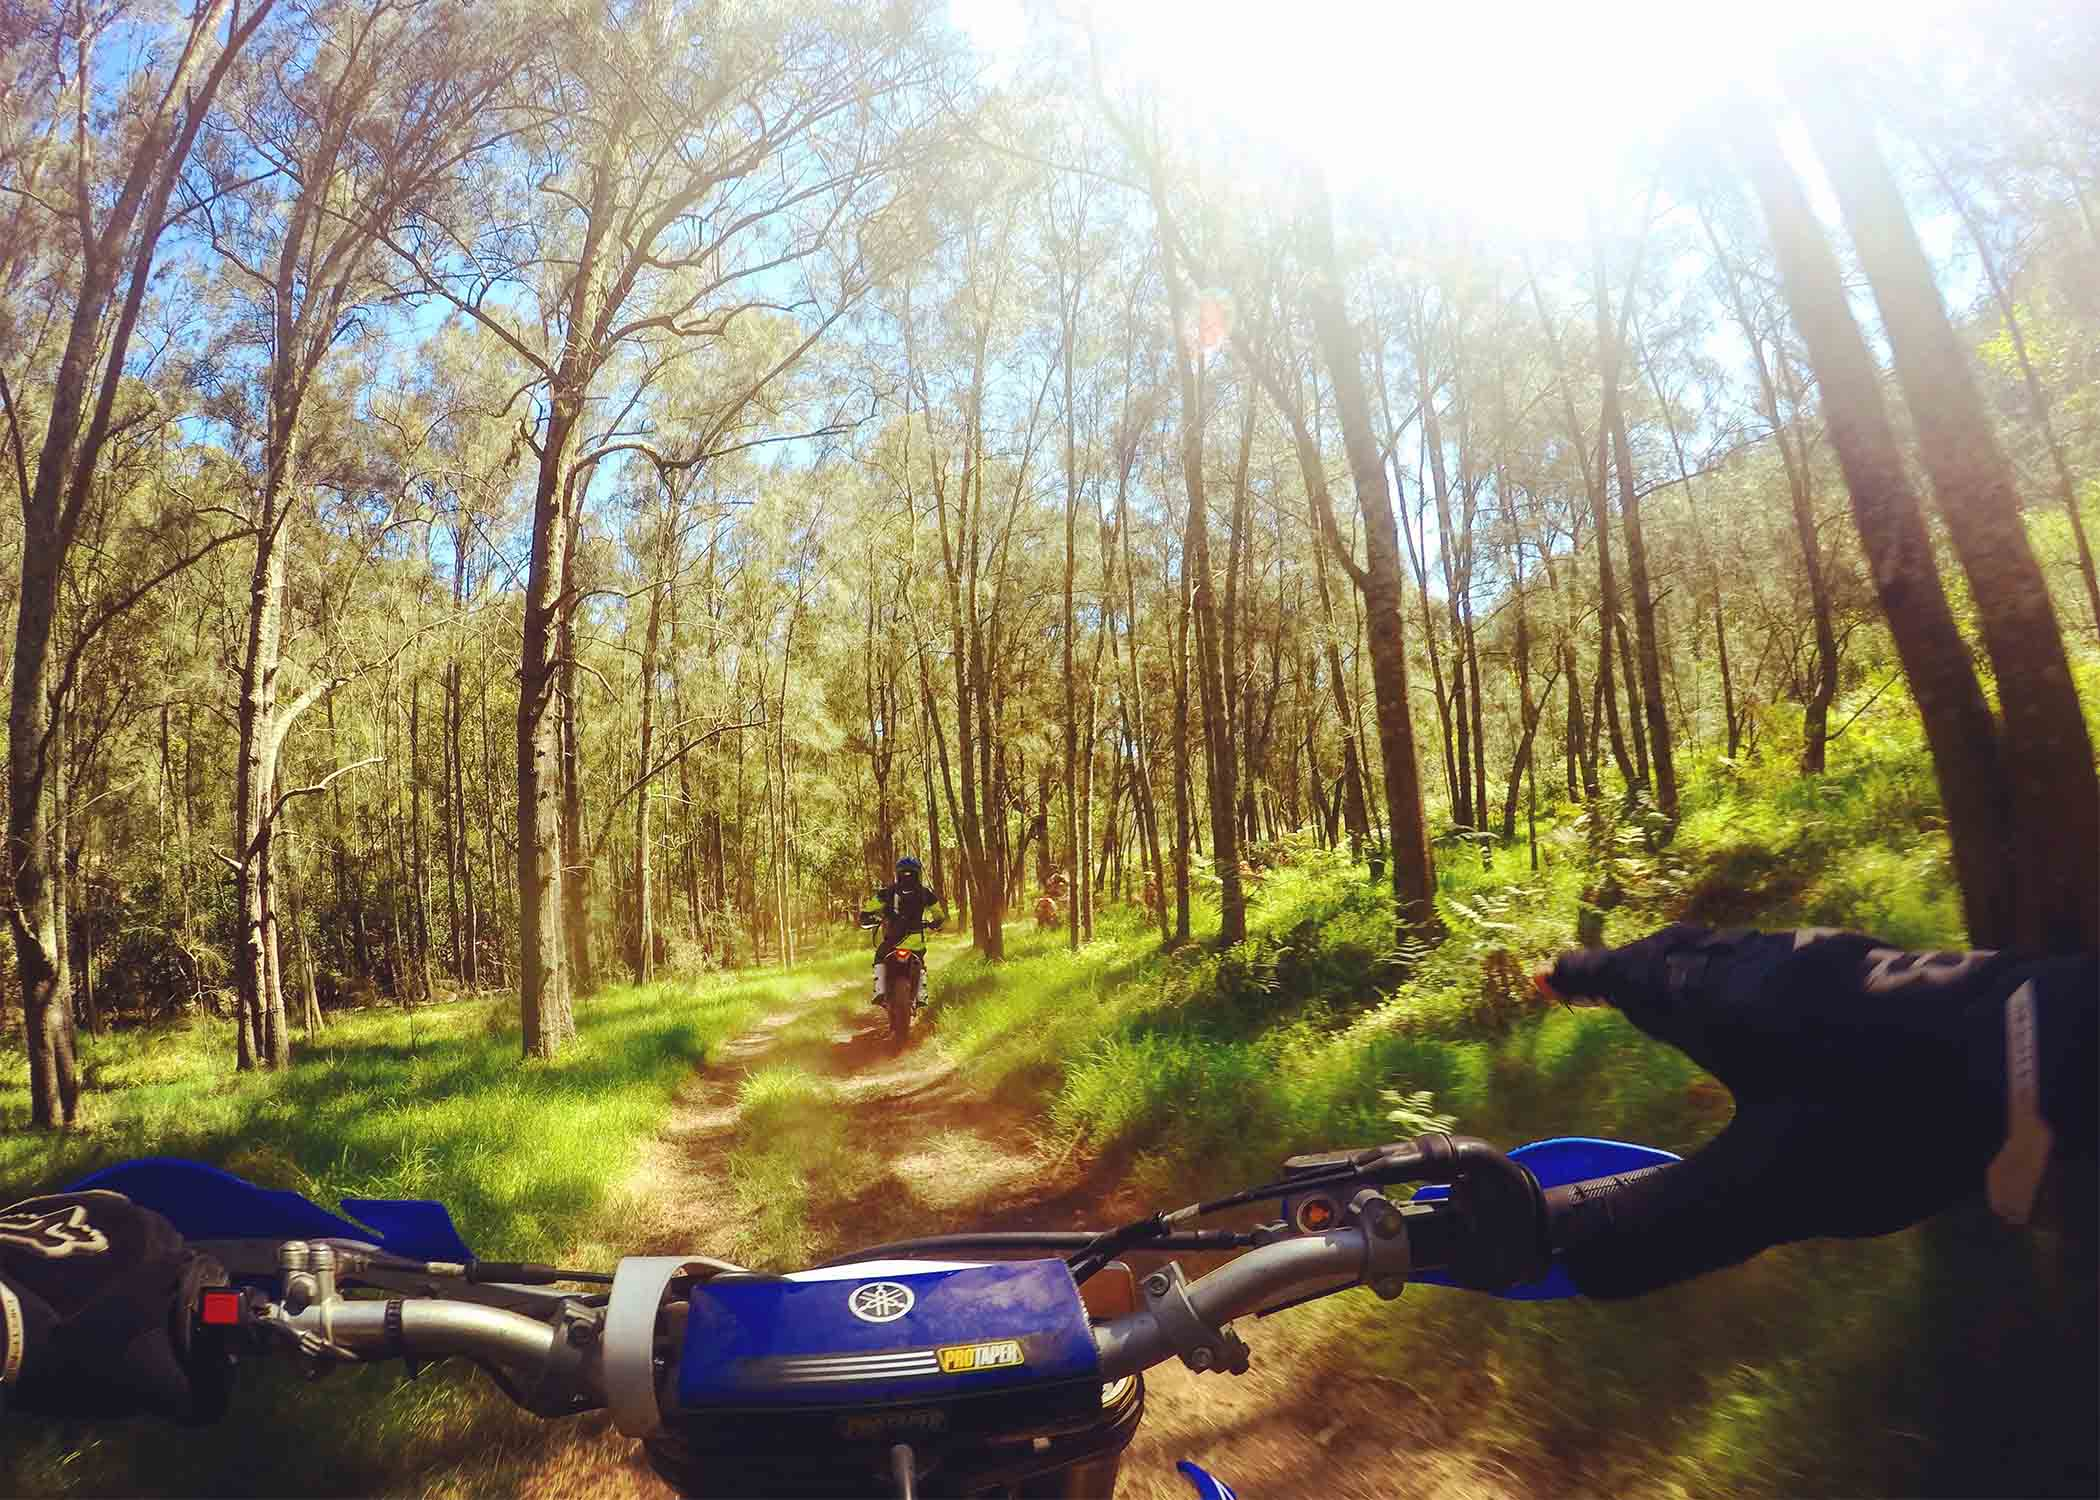 Dirt bikes in the woods